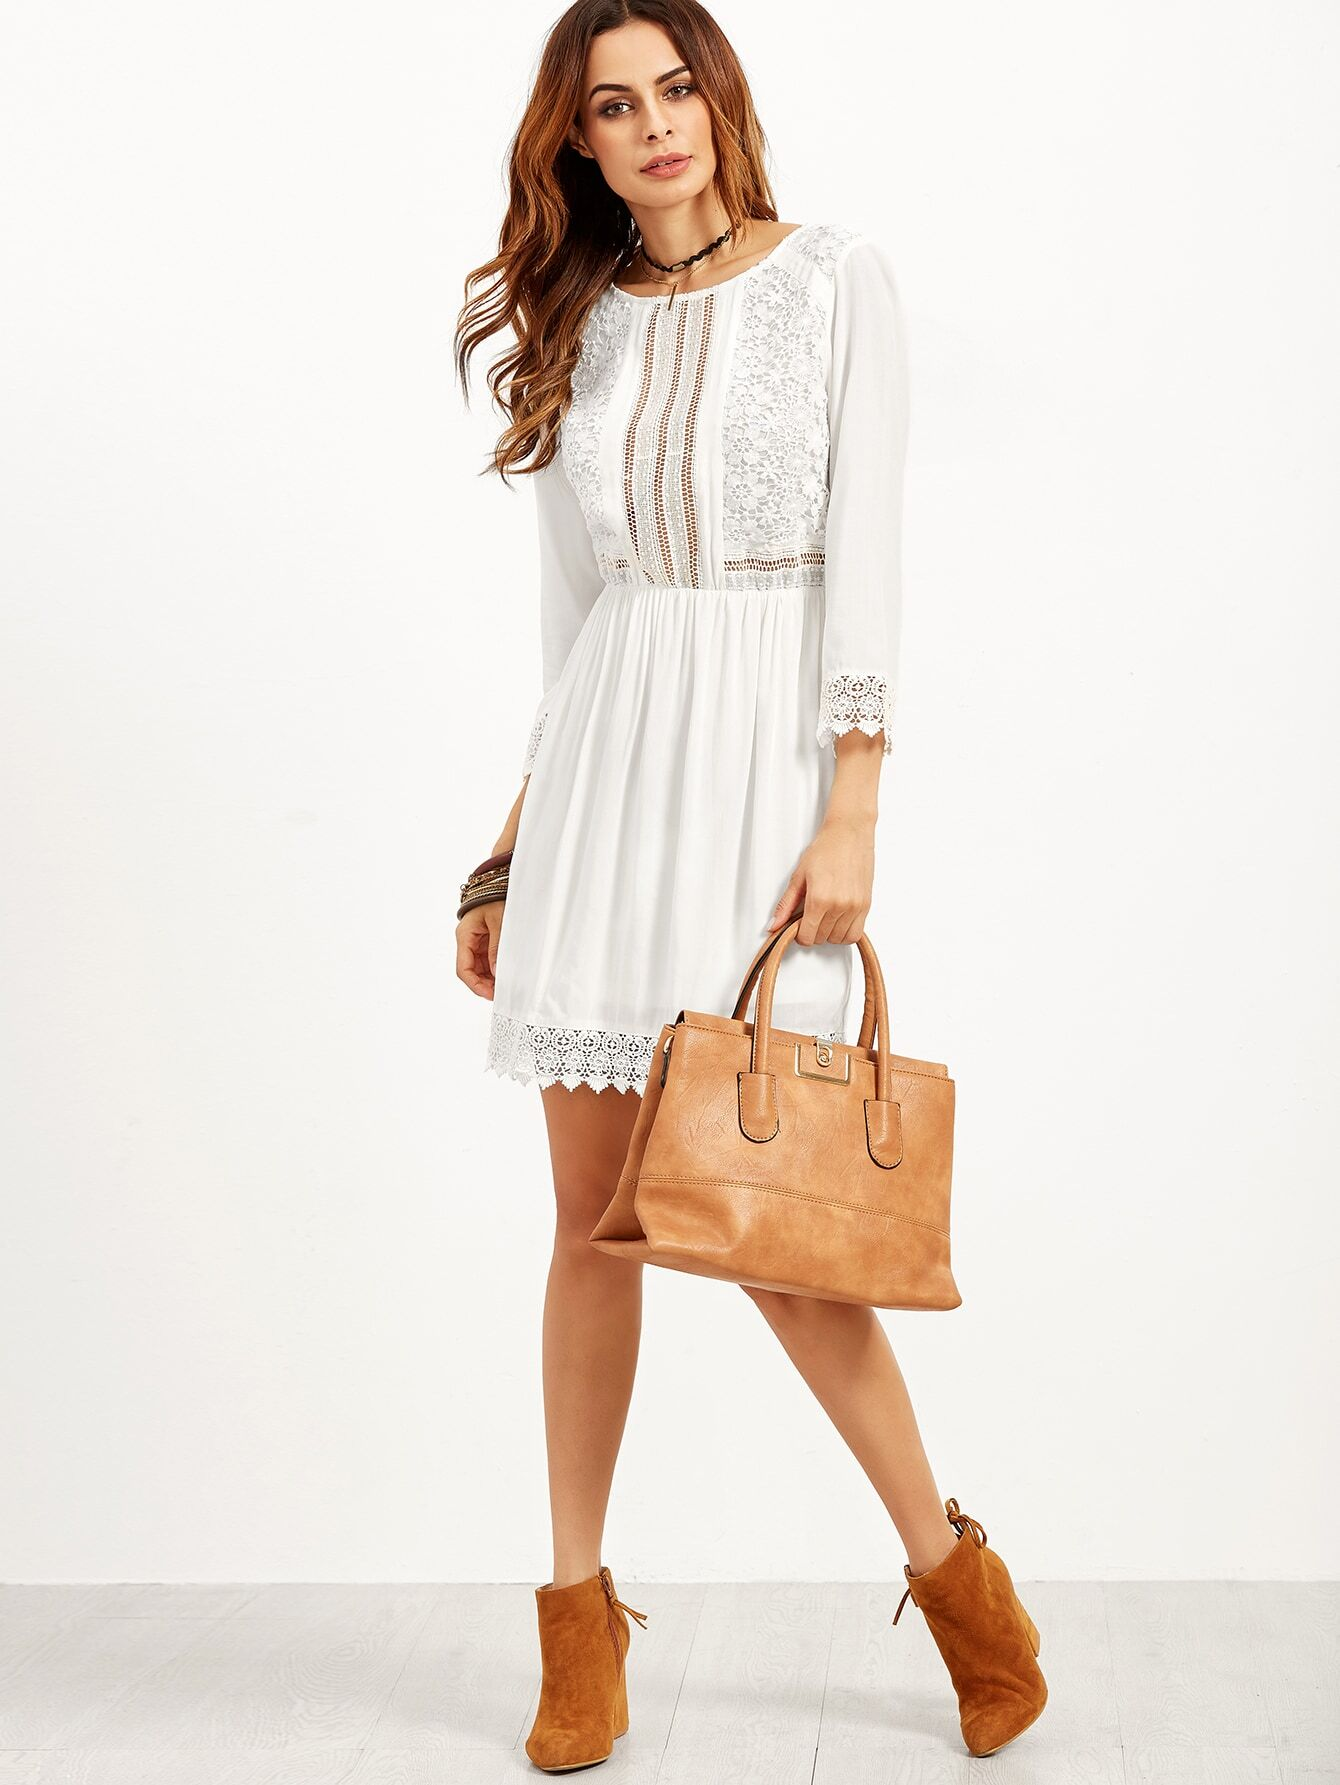 White Embroidered Lace Trim A Line DressWhite Embroidered Lace Trim A Line Dress<br><br>color: White<br>size: L,M,S,XS